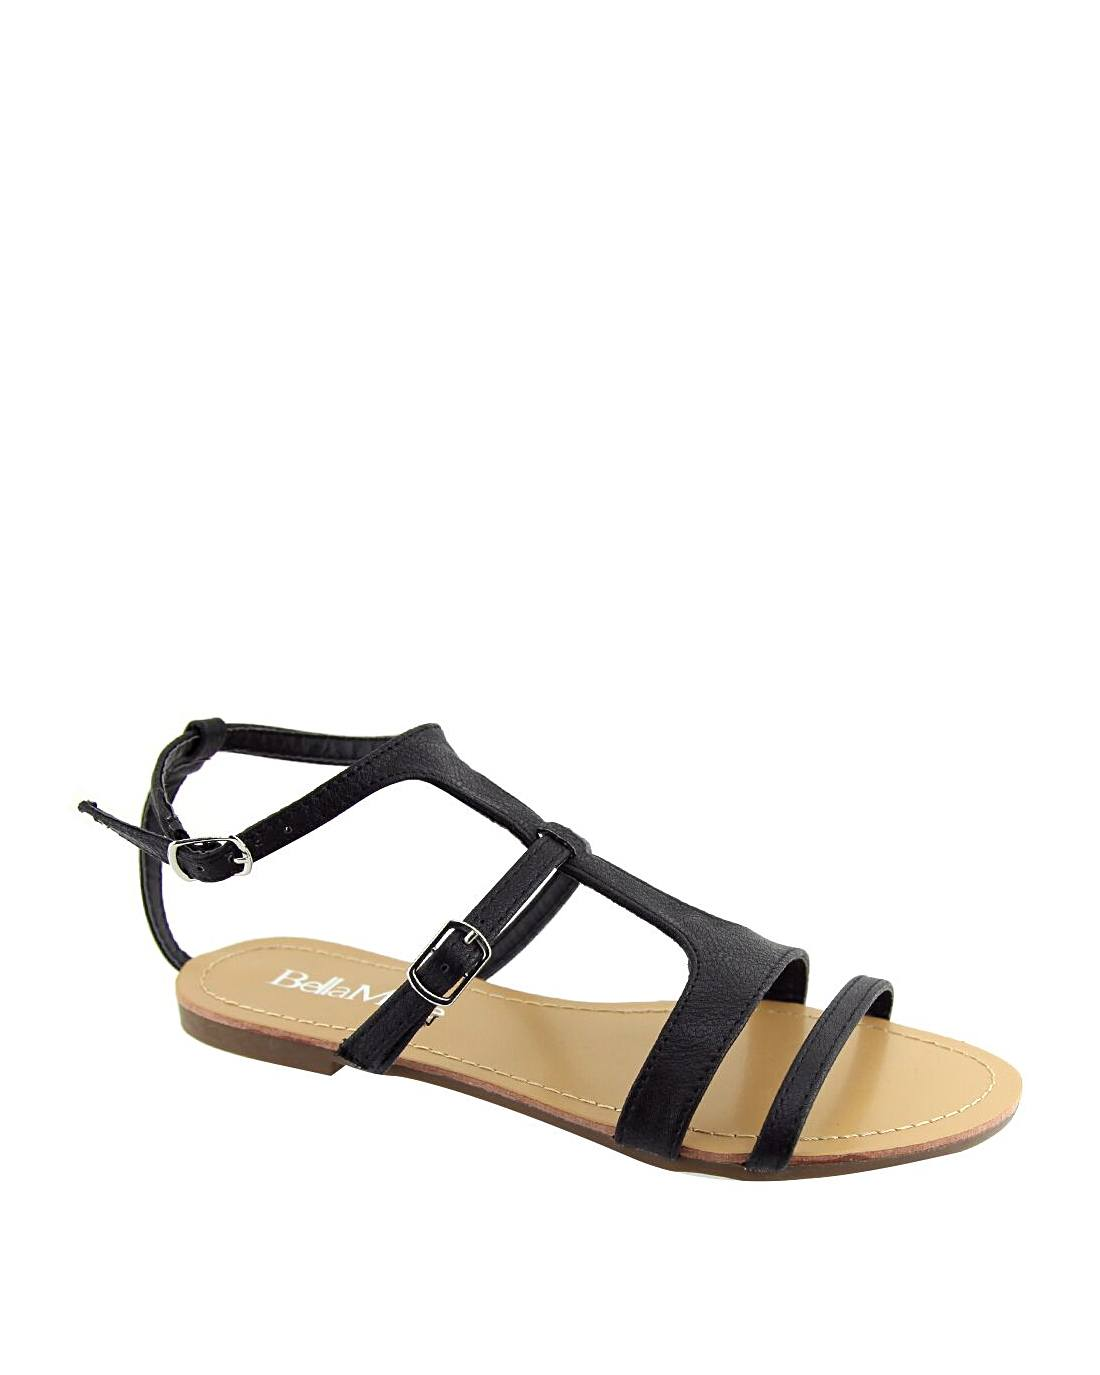 Open Toe T-Strap Side Buckle Closure Sandals-5.5-MY UPSCALE STORE